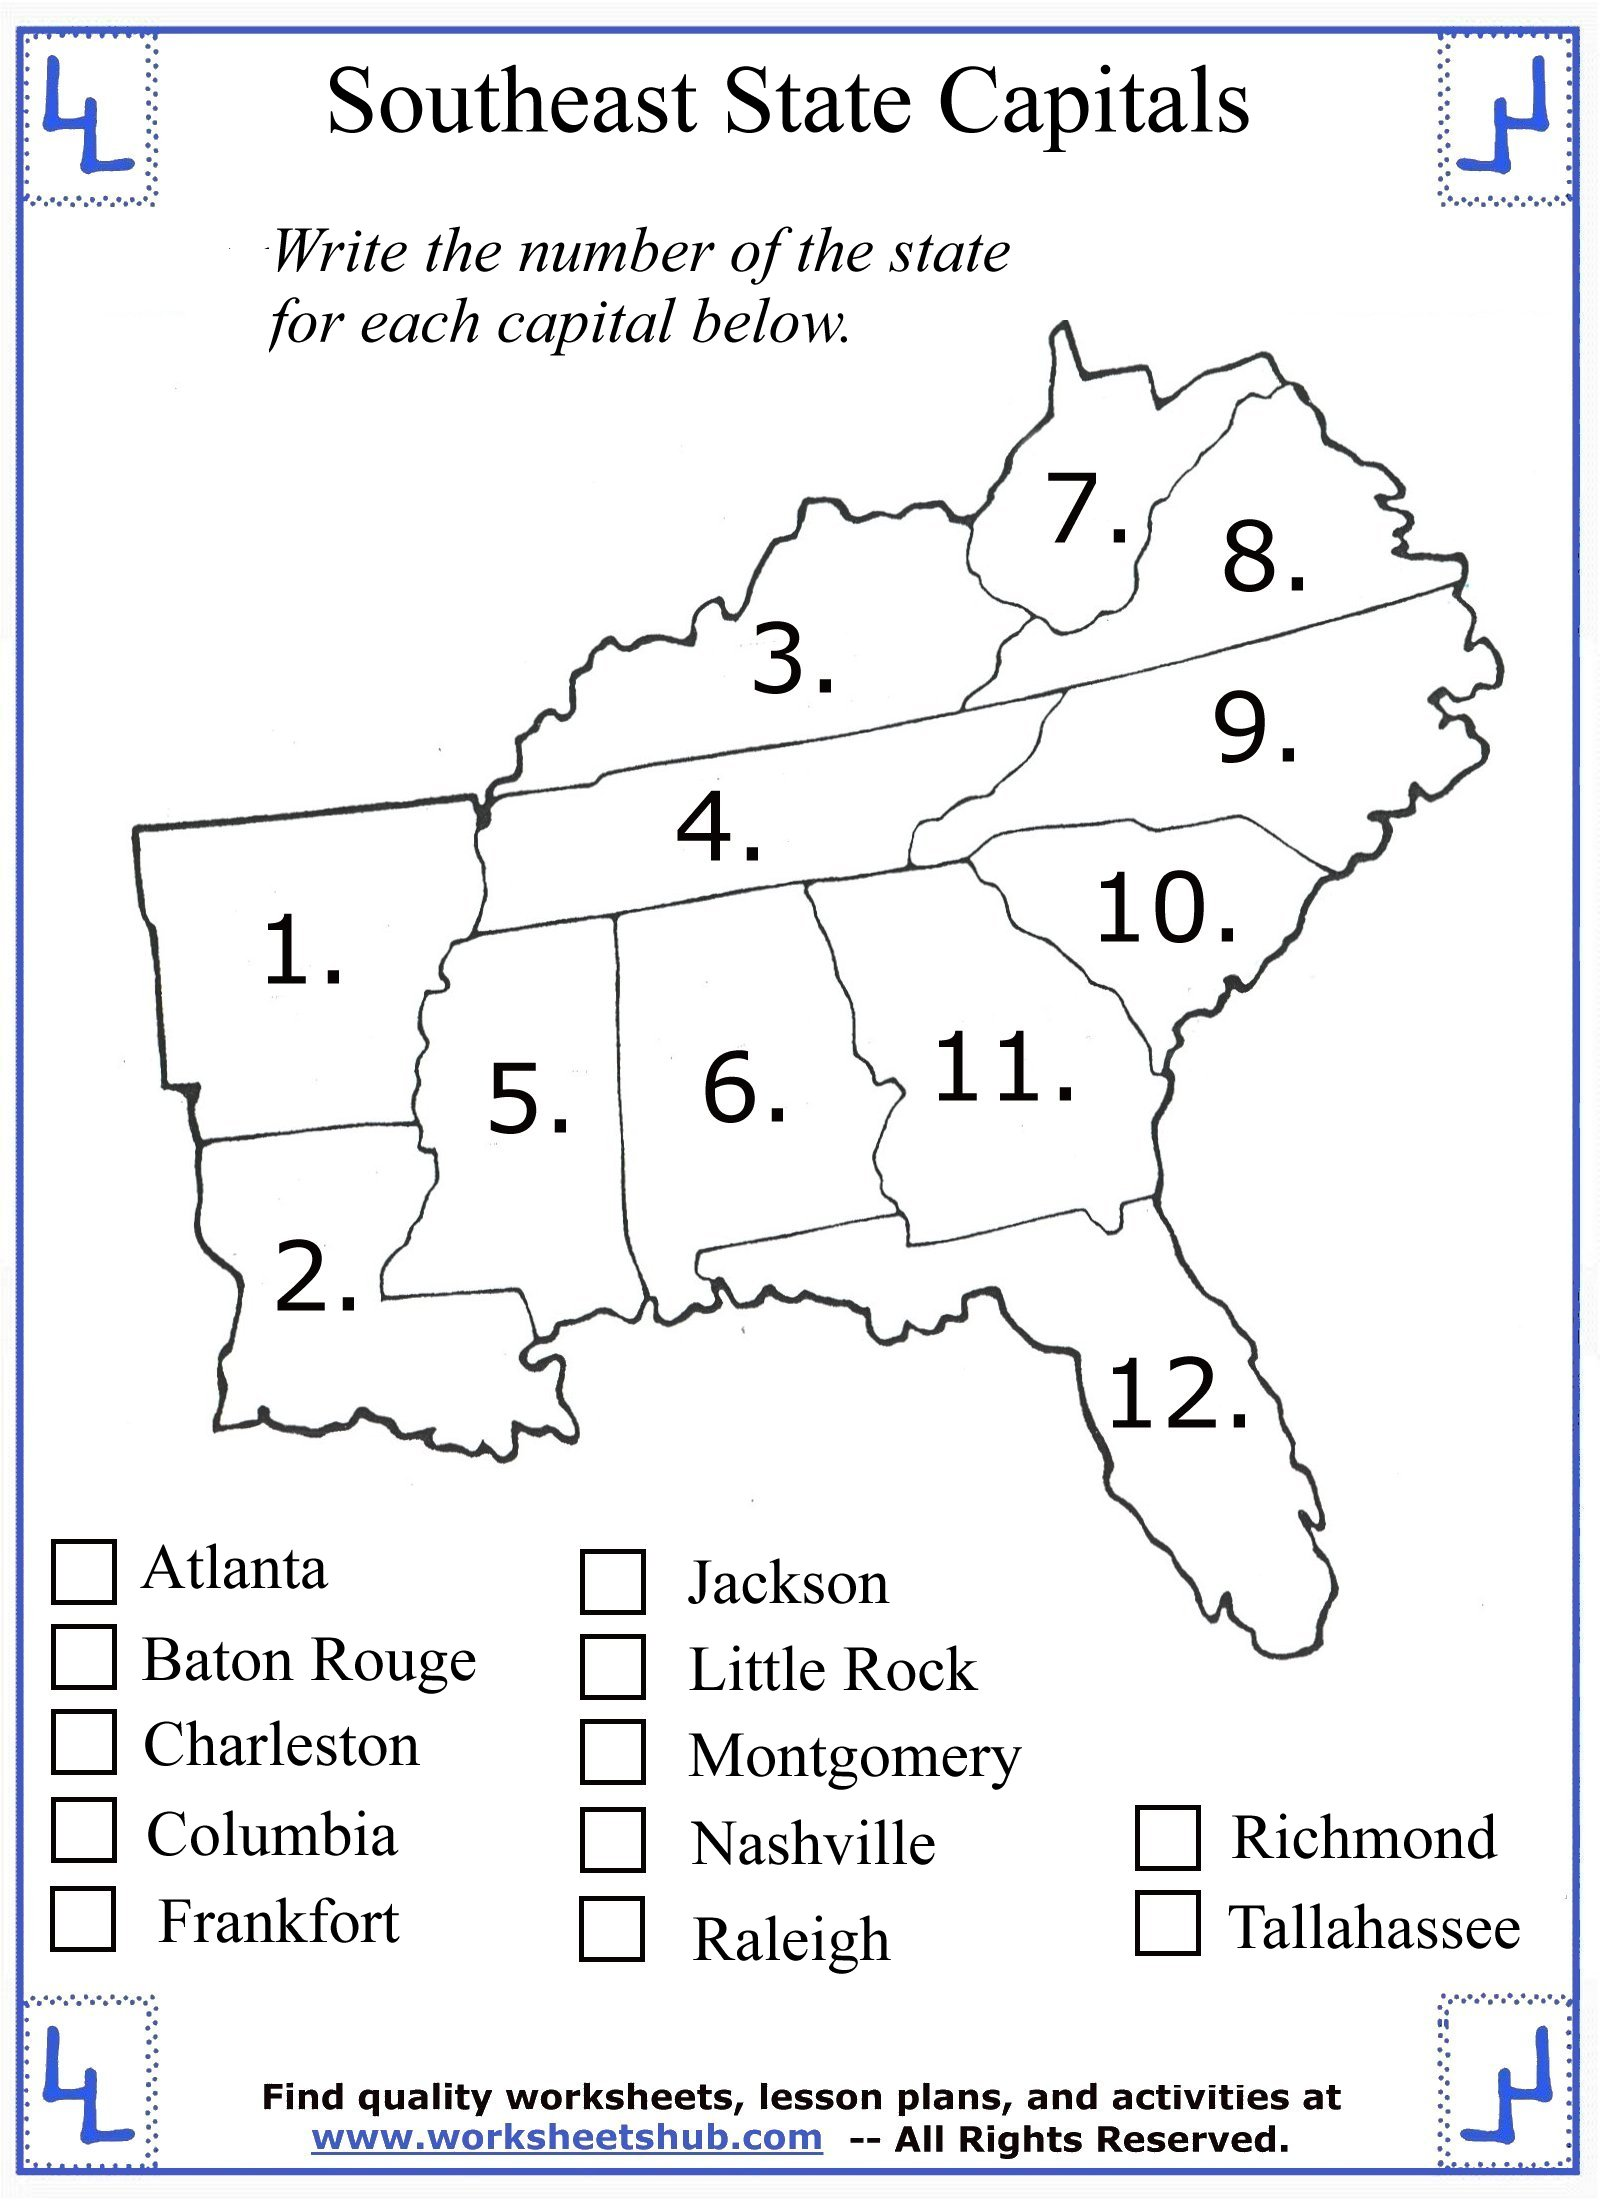 - 4th Grade Social Studies - Southeast Region States